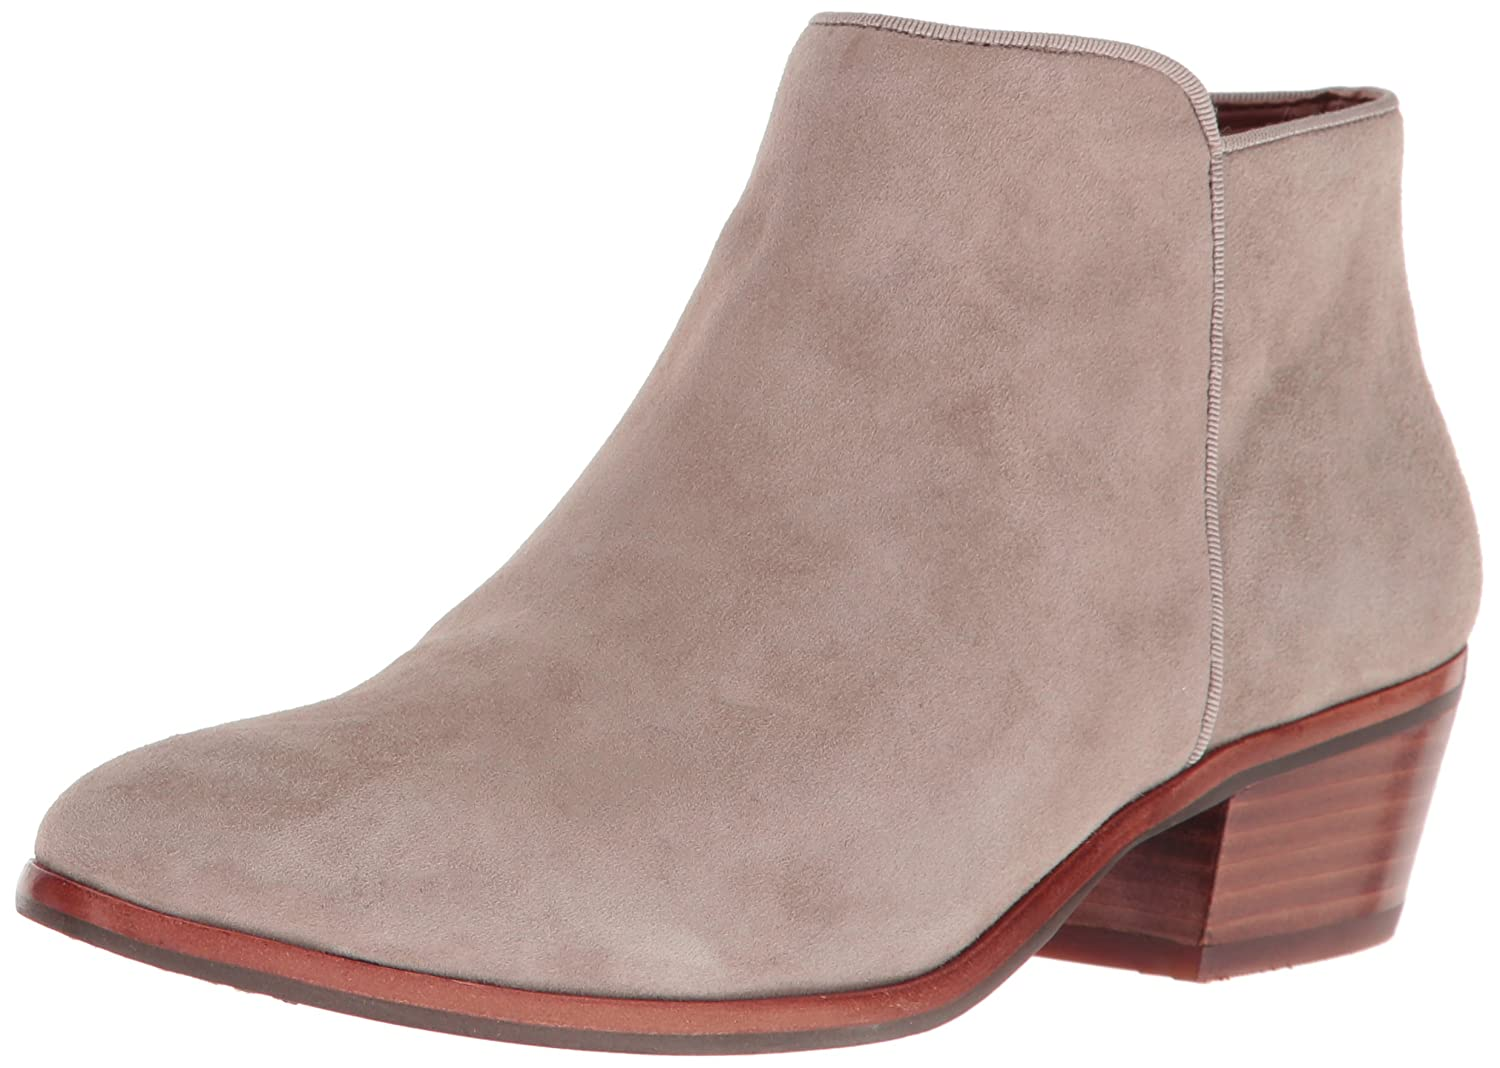 Sam Edelman Women's Petty Ankle Boot B00593P3GE 12 B(M) US|Putty Suede